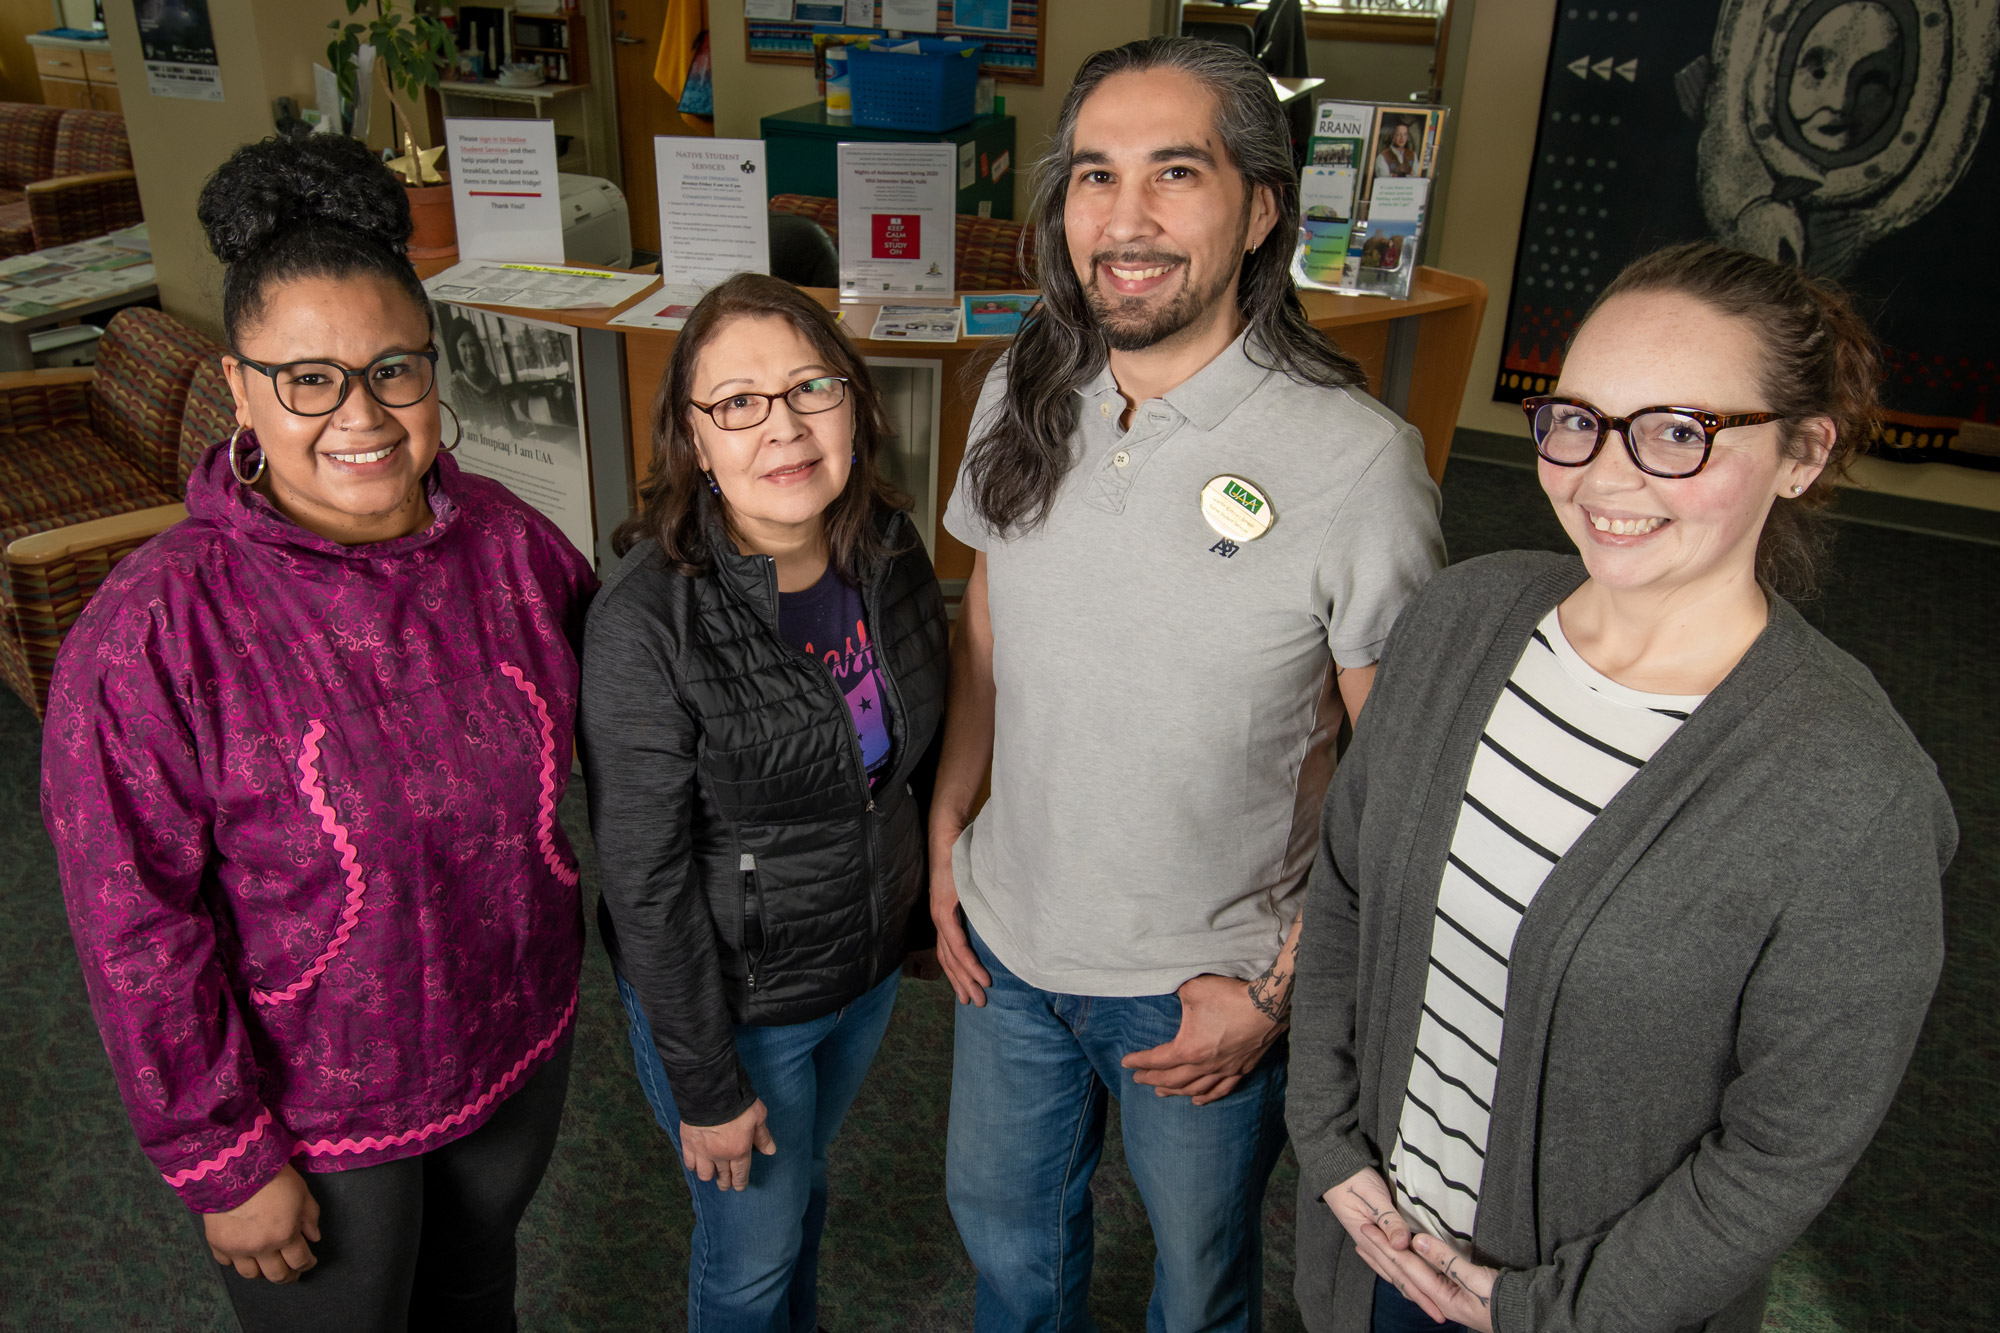 The four alumni staff of Native Student Services